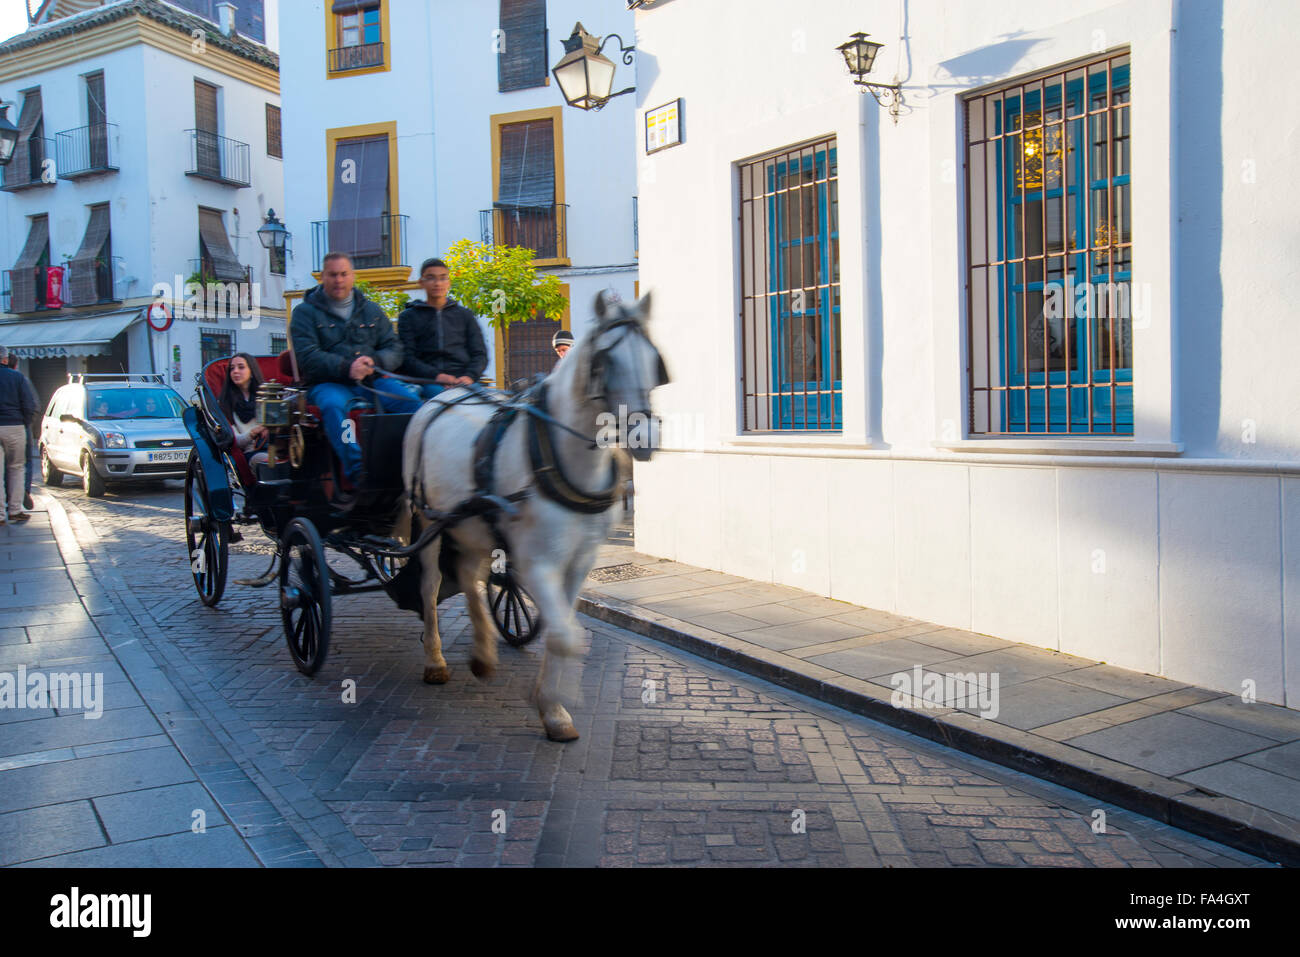 Horse-drawn carriage traveling along the street in the old town. Cordoba, Spain. - Stock Image